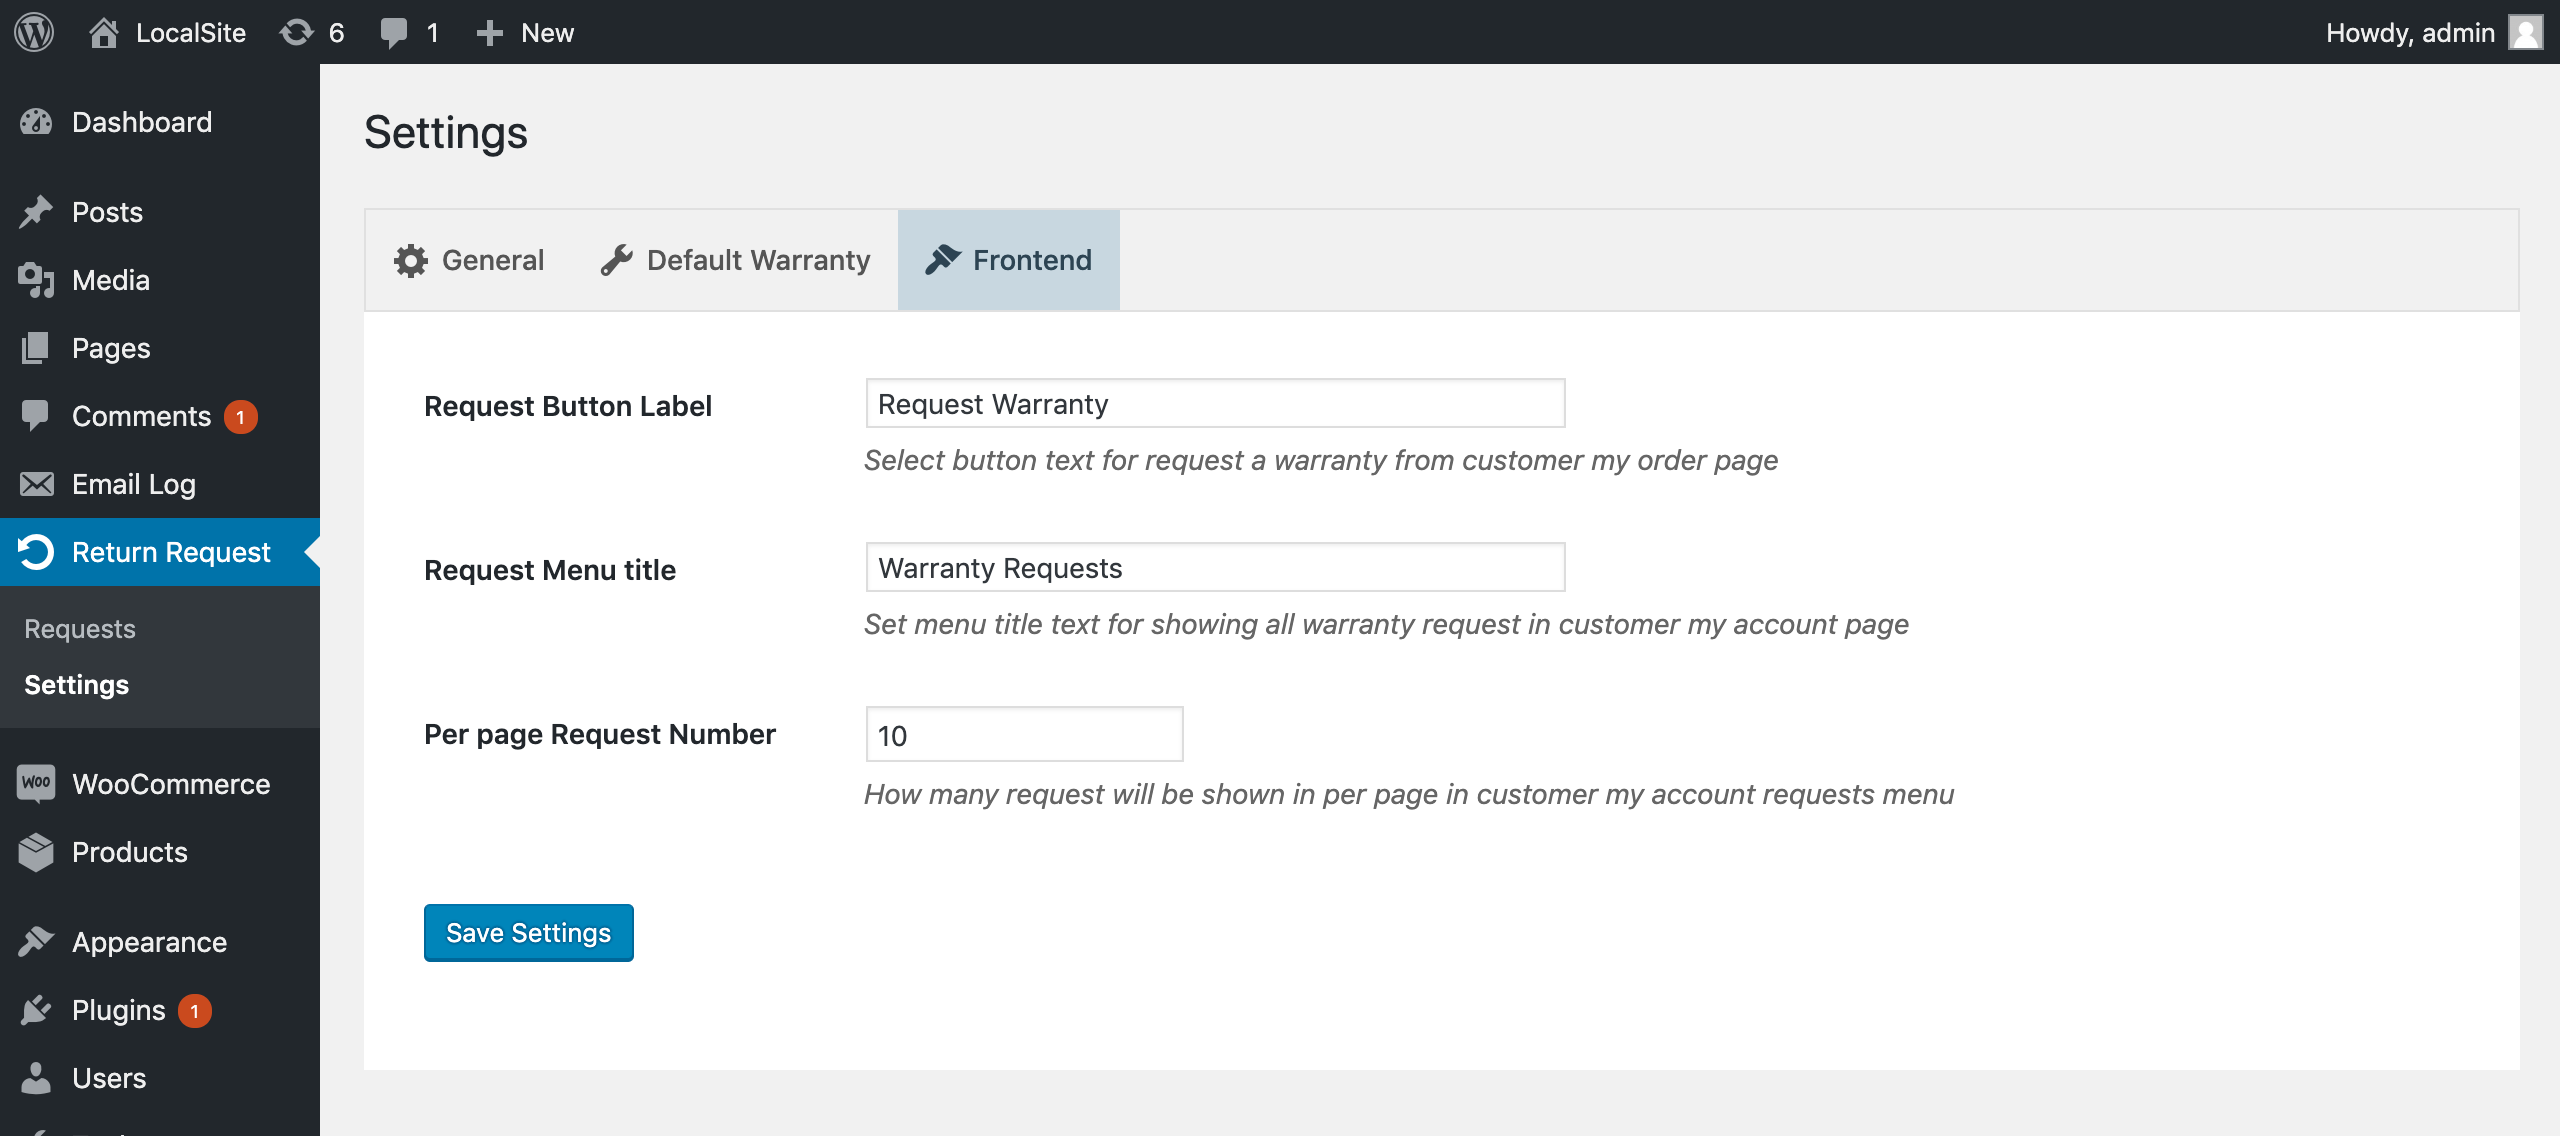 Return and Warranty Management System for WooCommerce